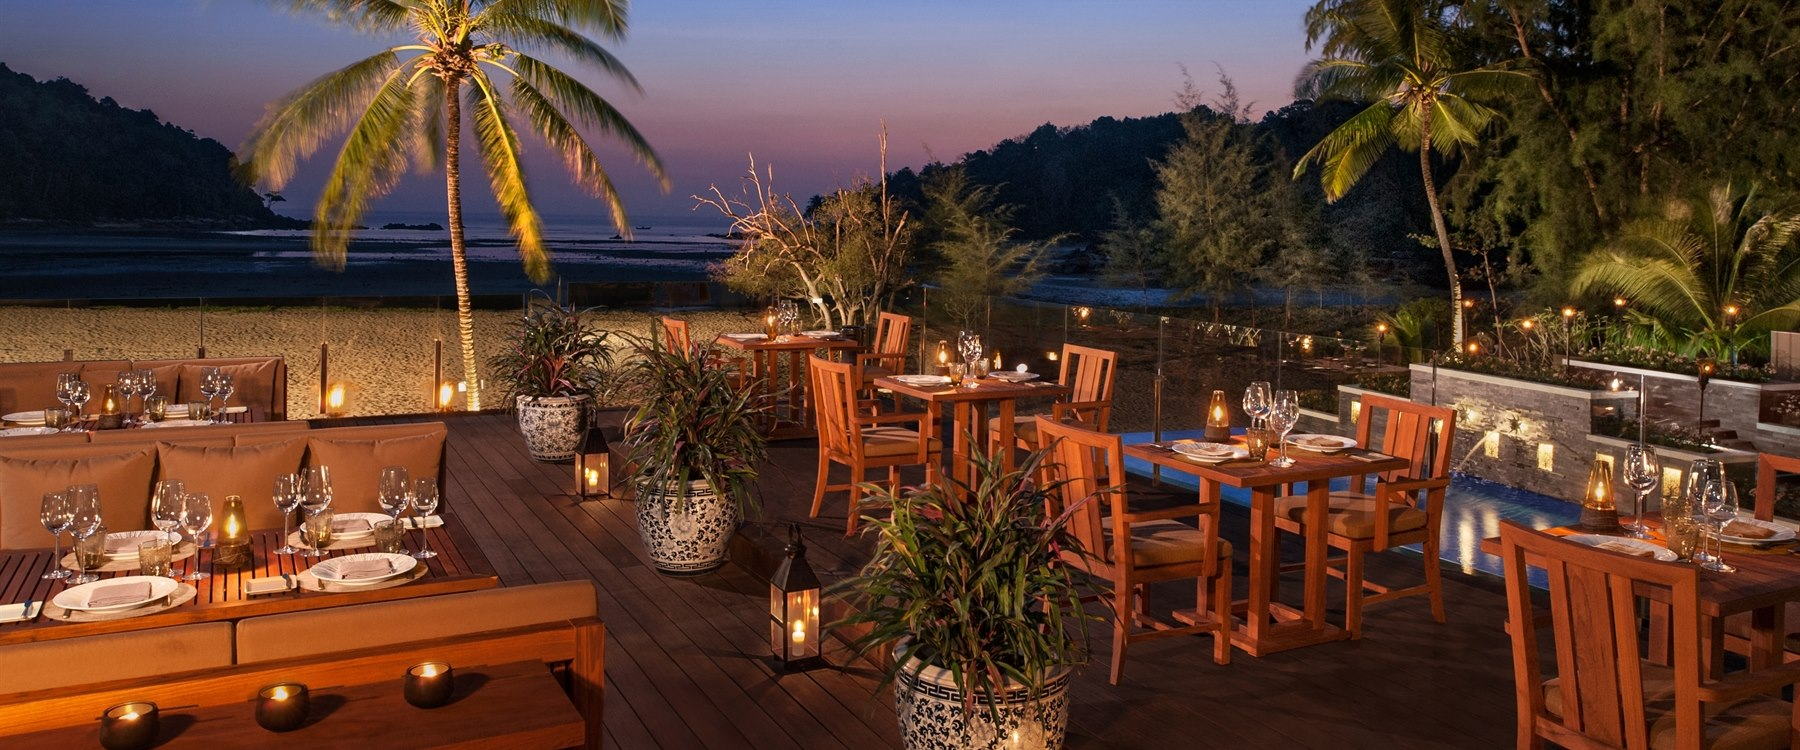 Layan Restaurant Deck at Anantara Layan Phuket Resort, Thailand